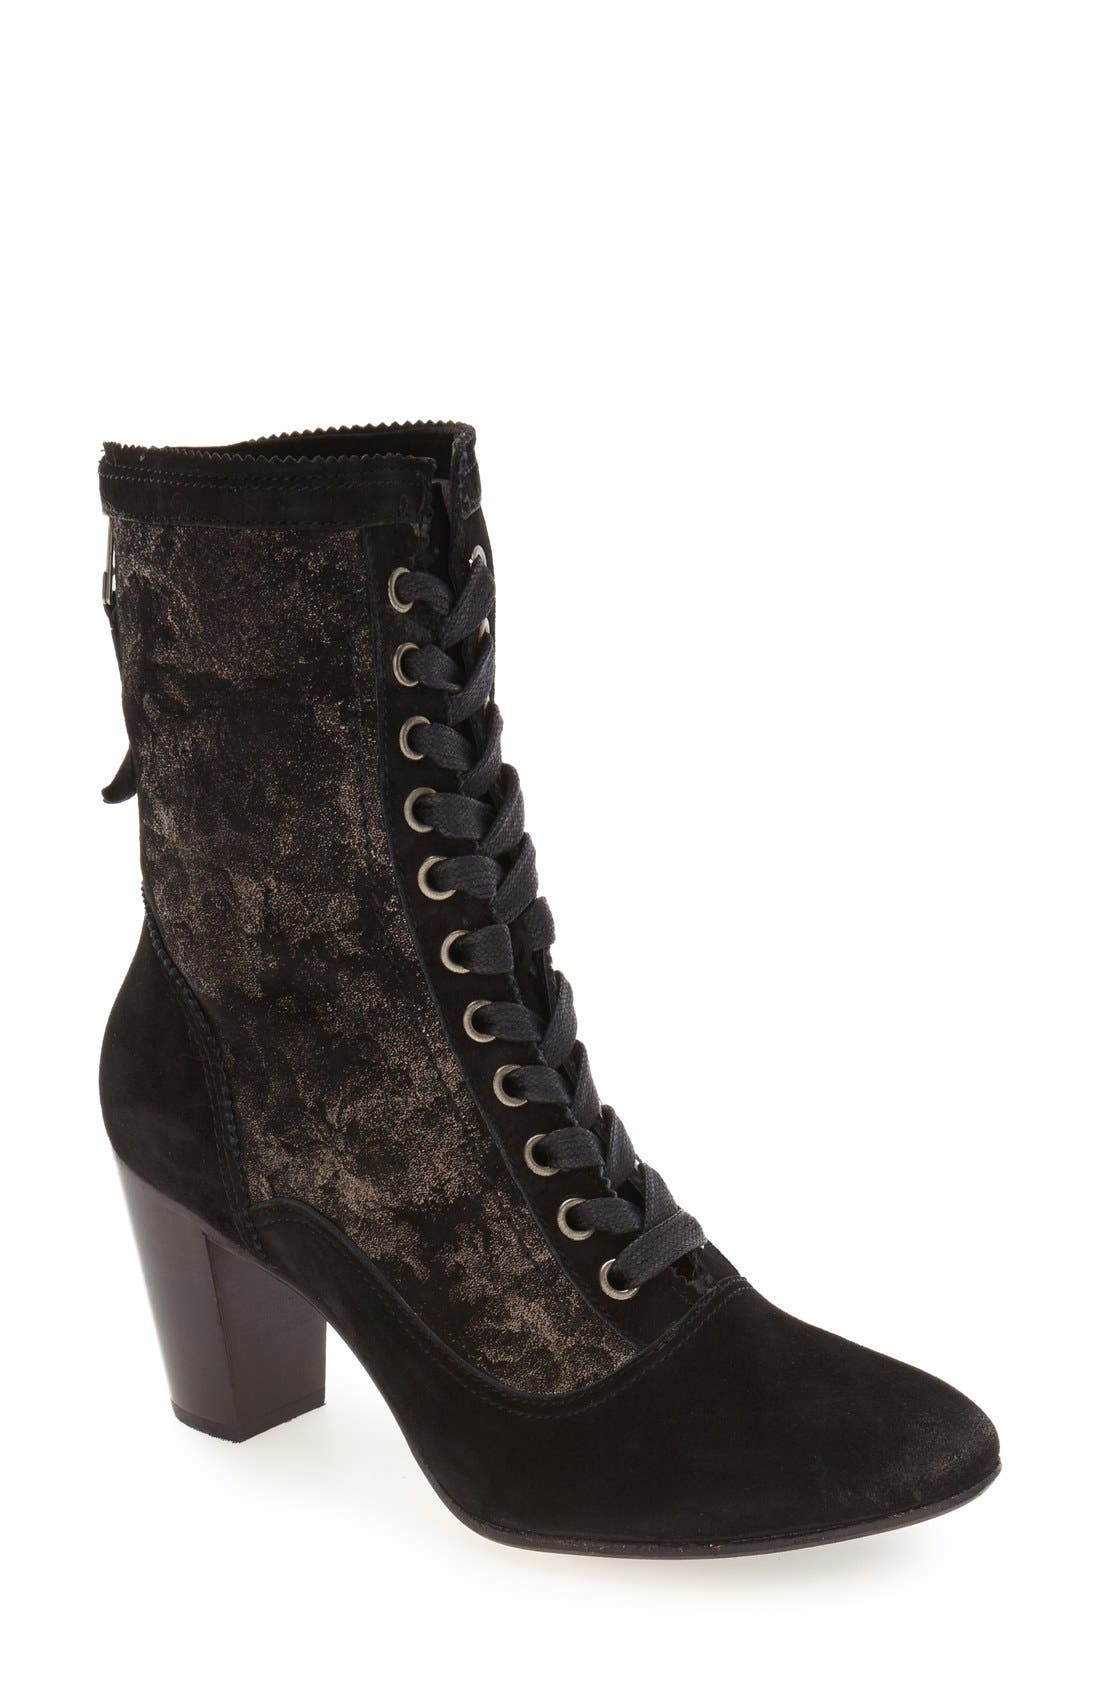 Alternate Image 1 Selected - Johnston & Murphy 'Adaline' Lace-Up Boot (Women)